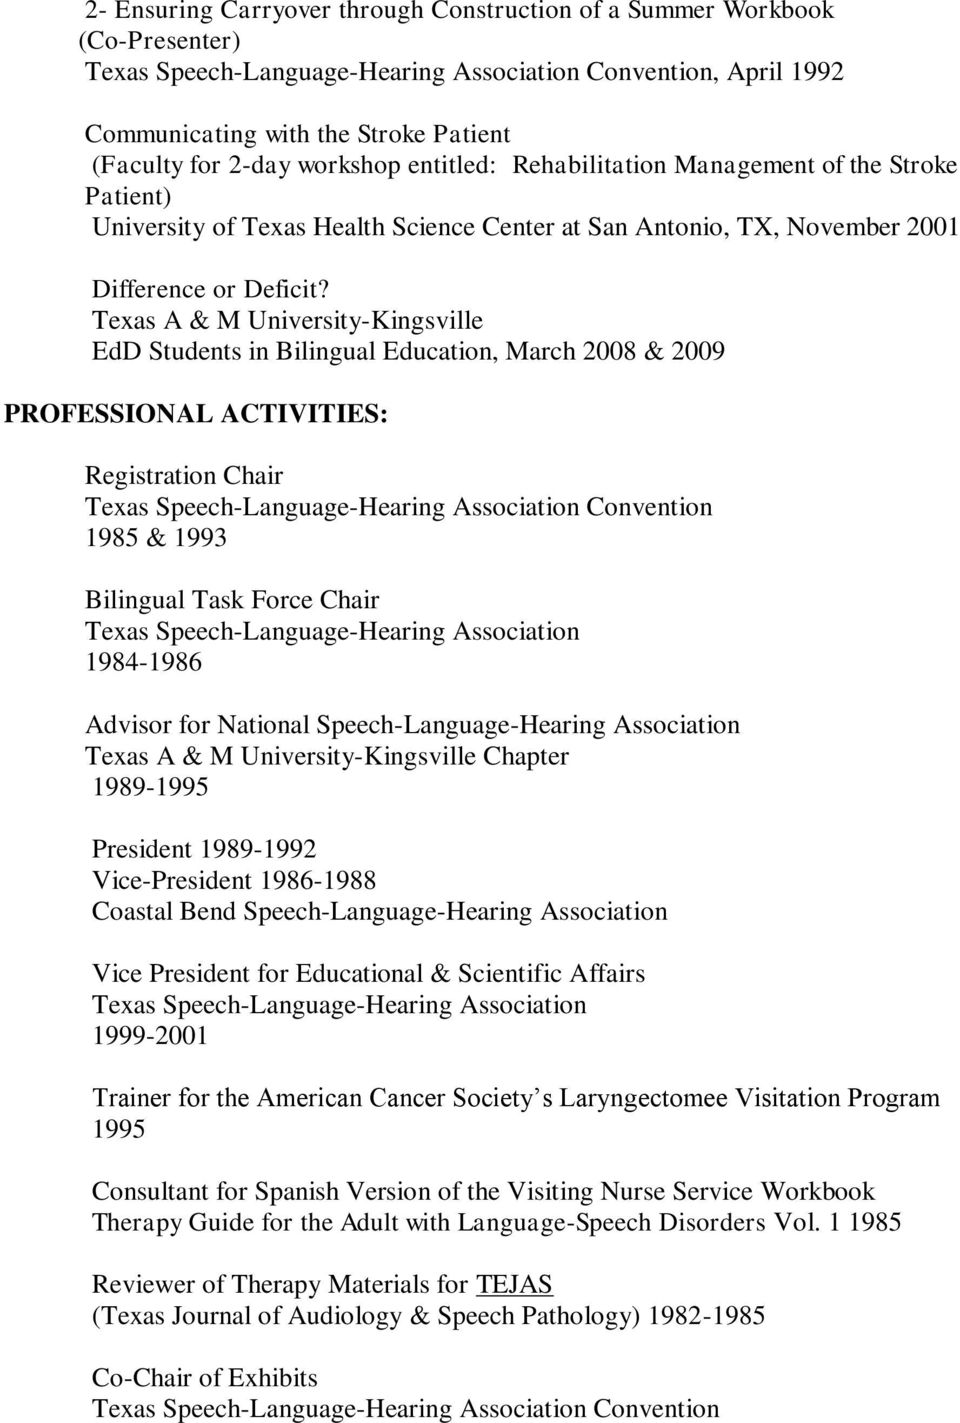 EdD Students in Bilingual Education, March 2008 & 2009 PROFESSIONAL ACTIVITIES: Registration Chair Convention 1985 & 1993 Bilingual Task Force Chair 1984-1986 Advisor for National